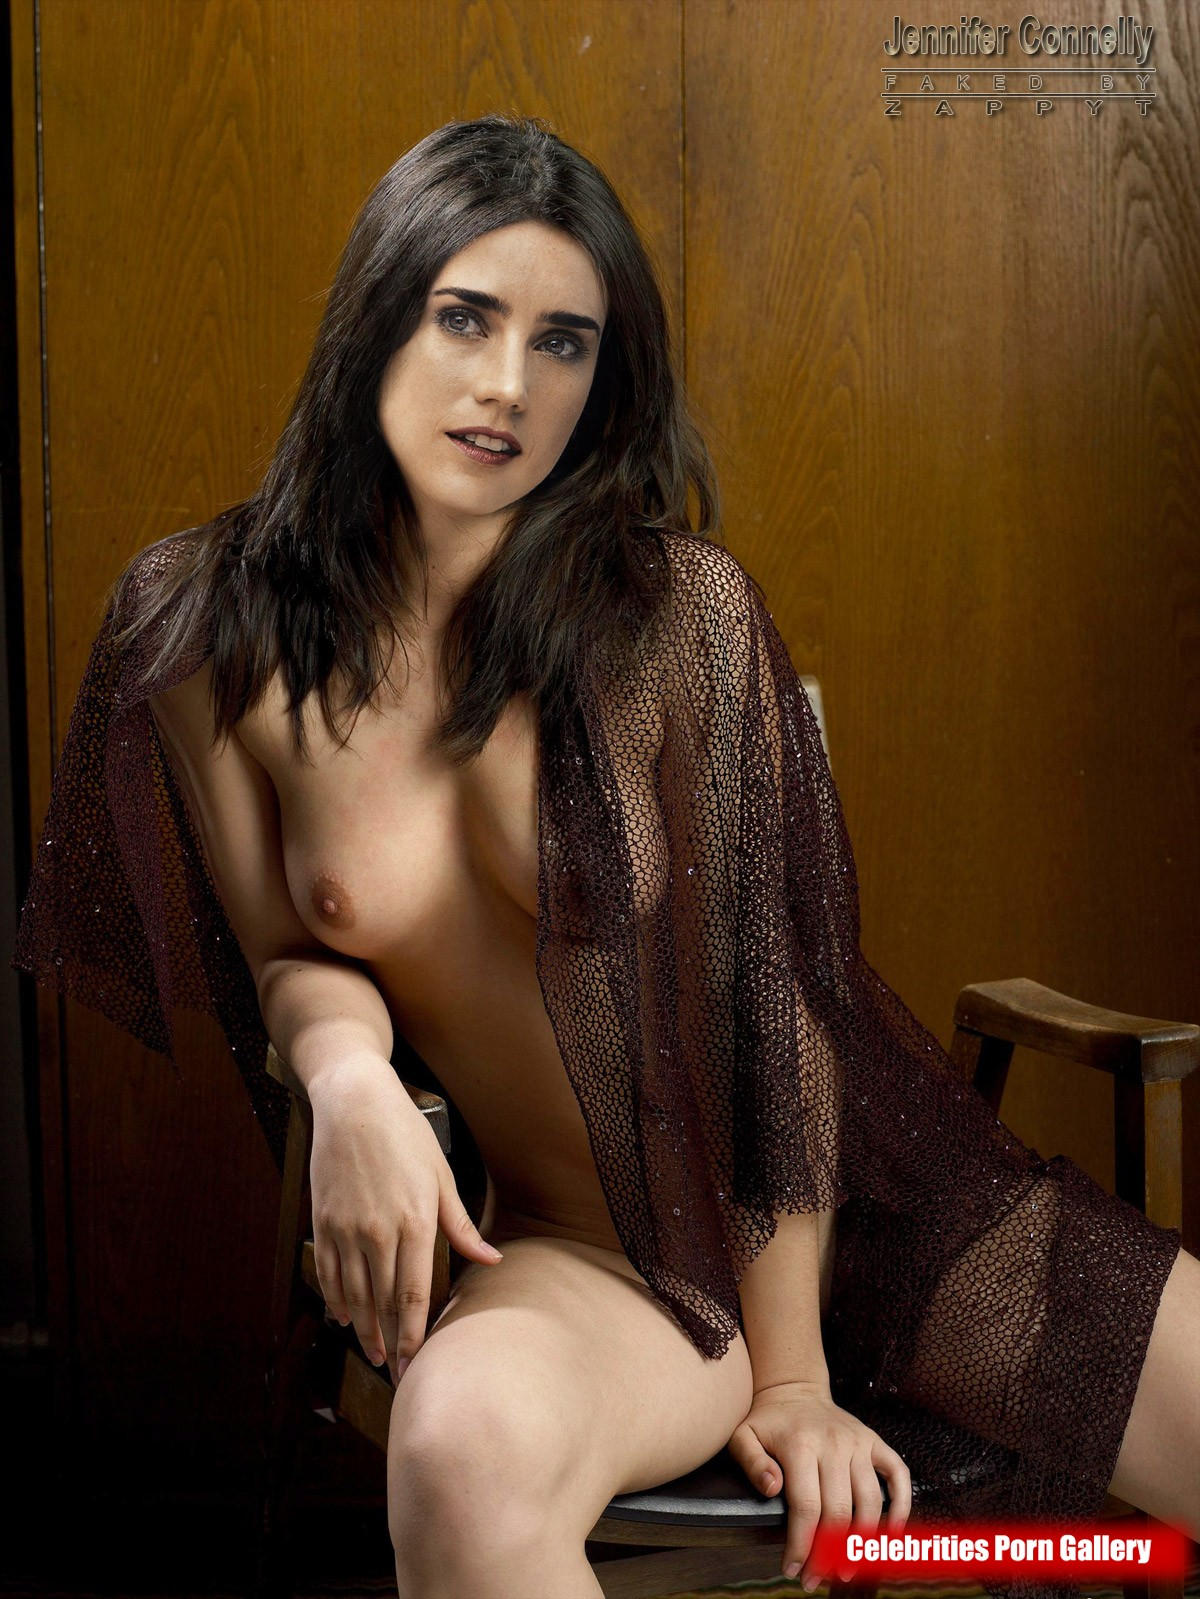 Jennifer Connelly nude